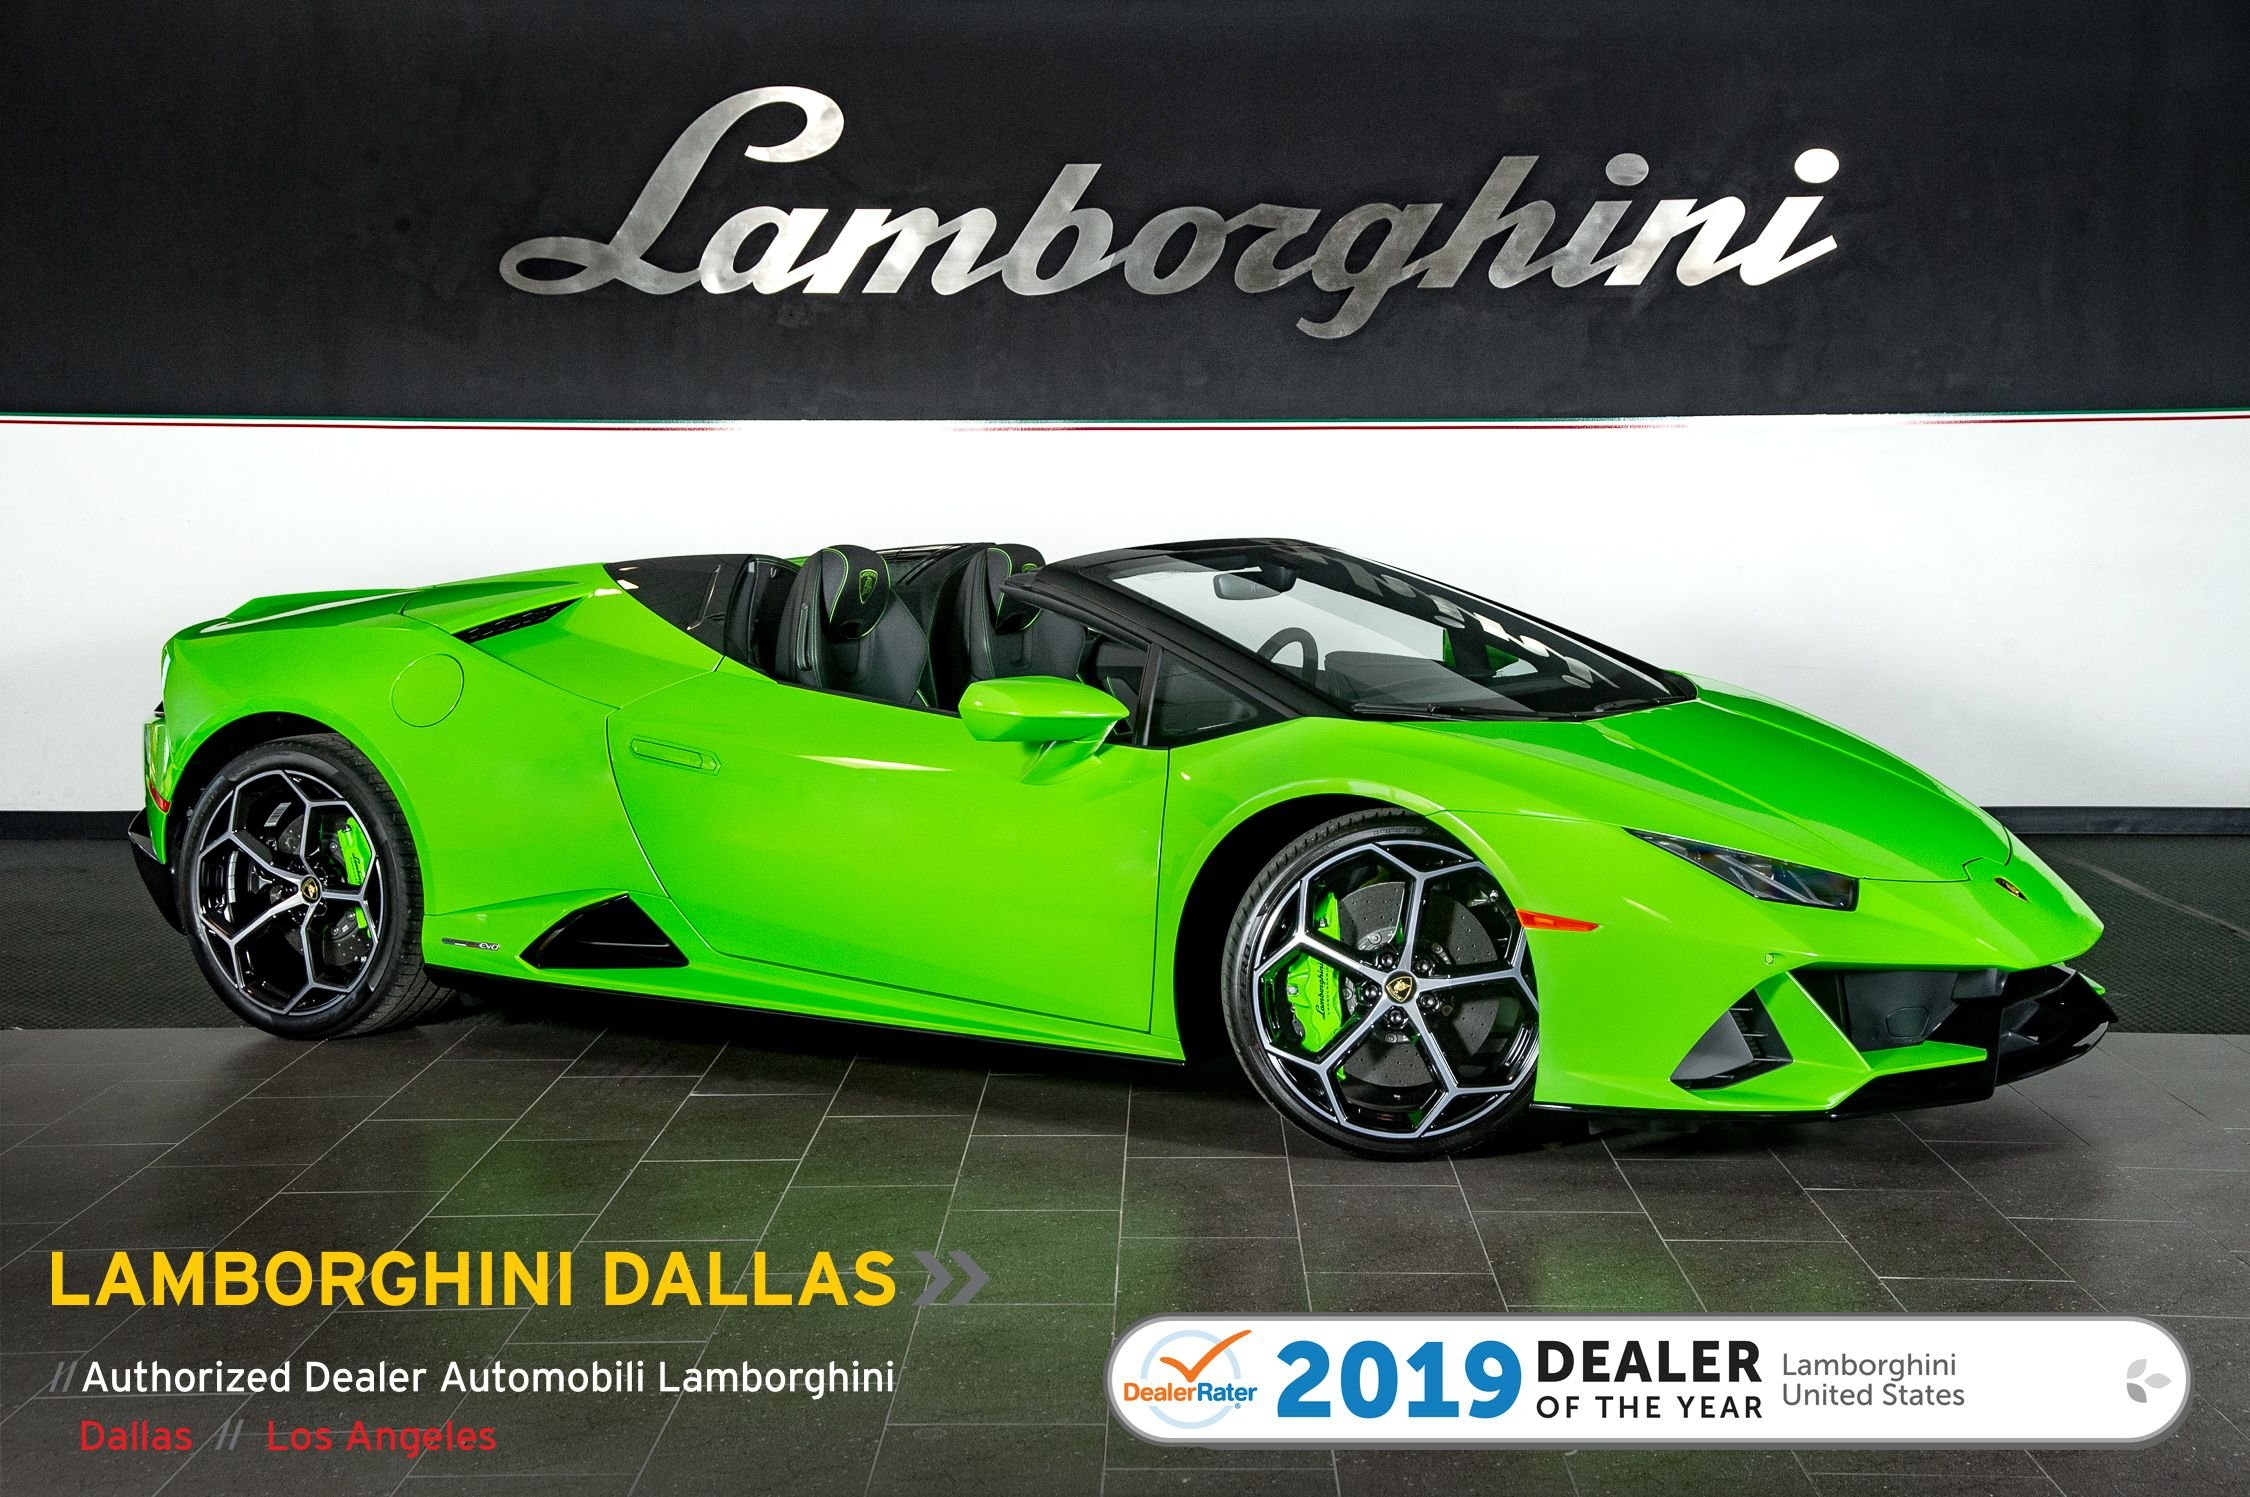 used 2020 lamborghini huracan evo spyder for sale richardson tx stock lc633 vin zhwut4zf2lla13935 used 2020 lamborghini huracan evo spyder for sale richardson tx stock lc633 vin zhwut4zf2lla13935